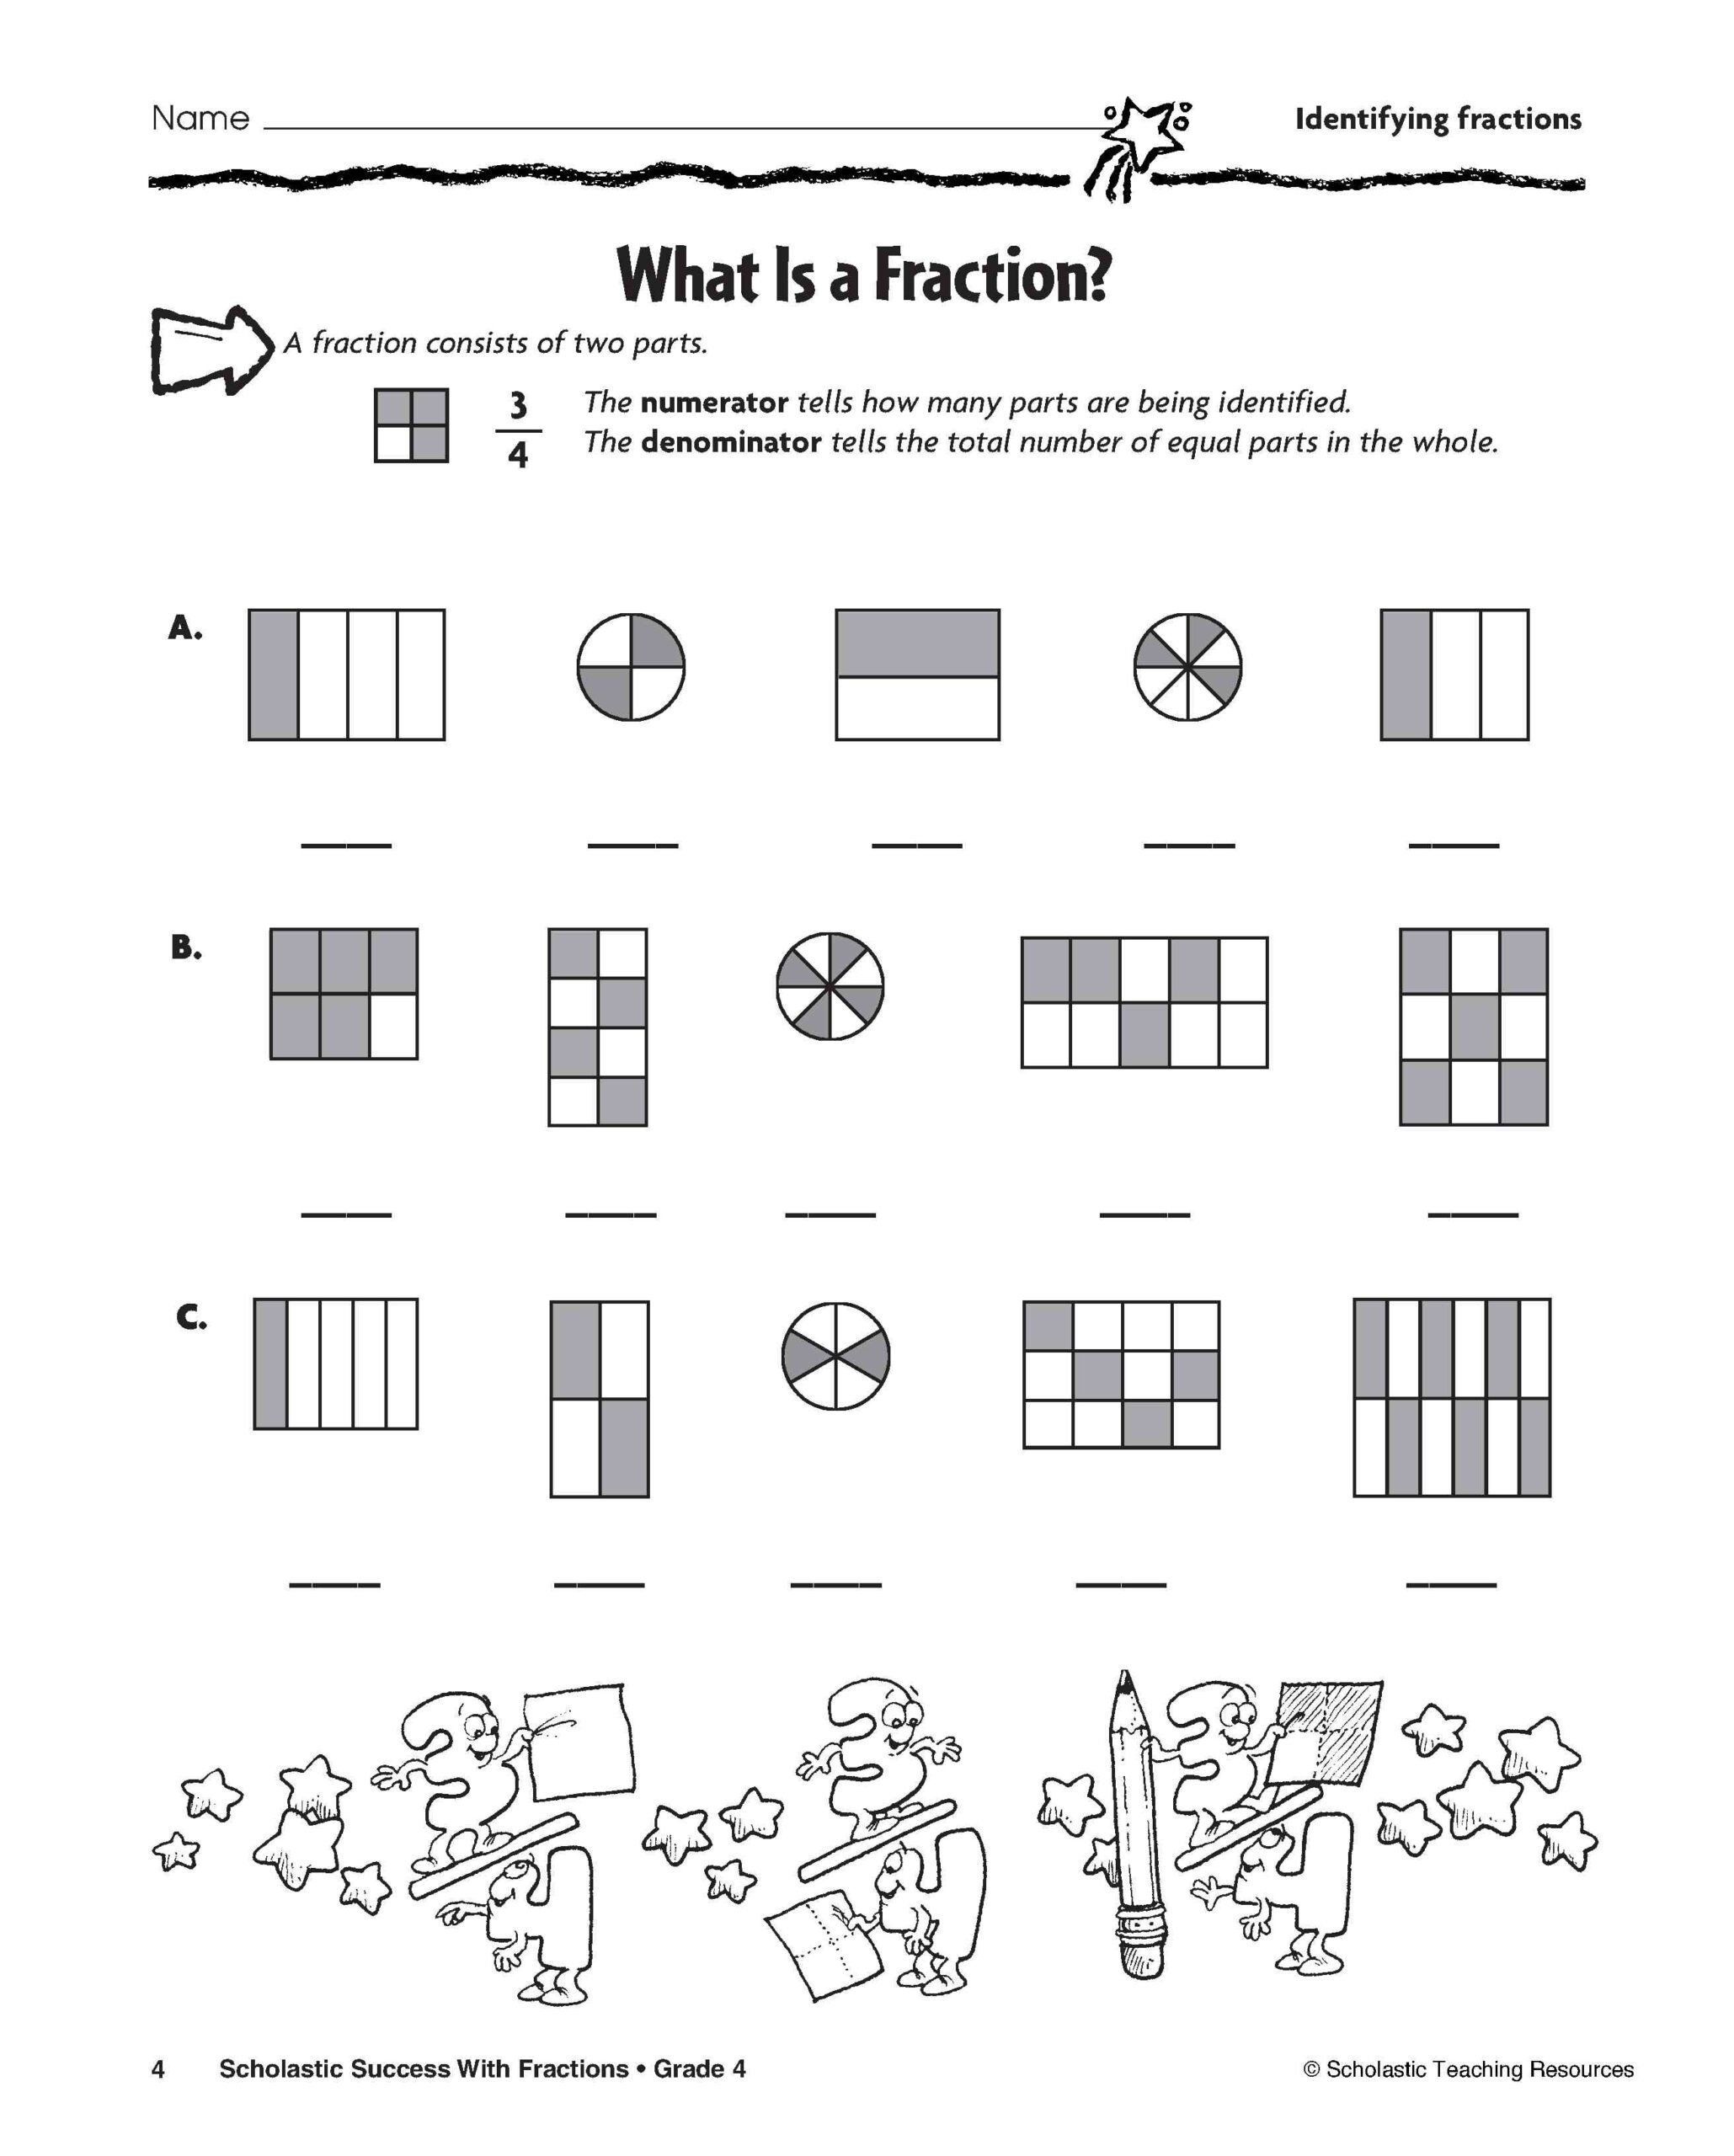 7th Grade Math Enrichment Worksheets Integers Definition Talking tom Coloring Pages Third Grade